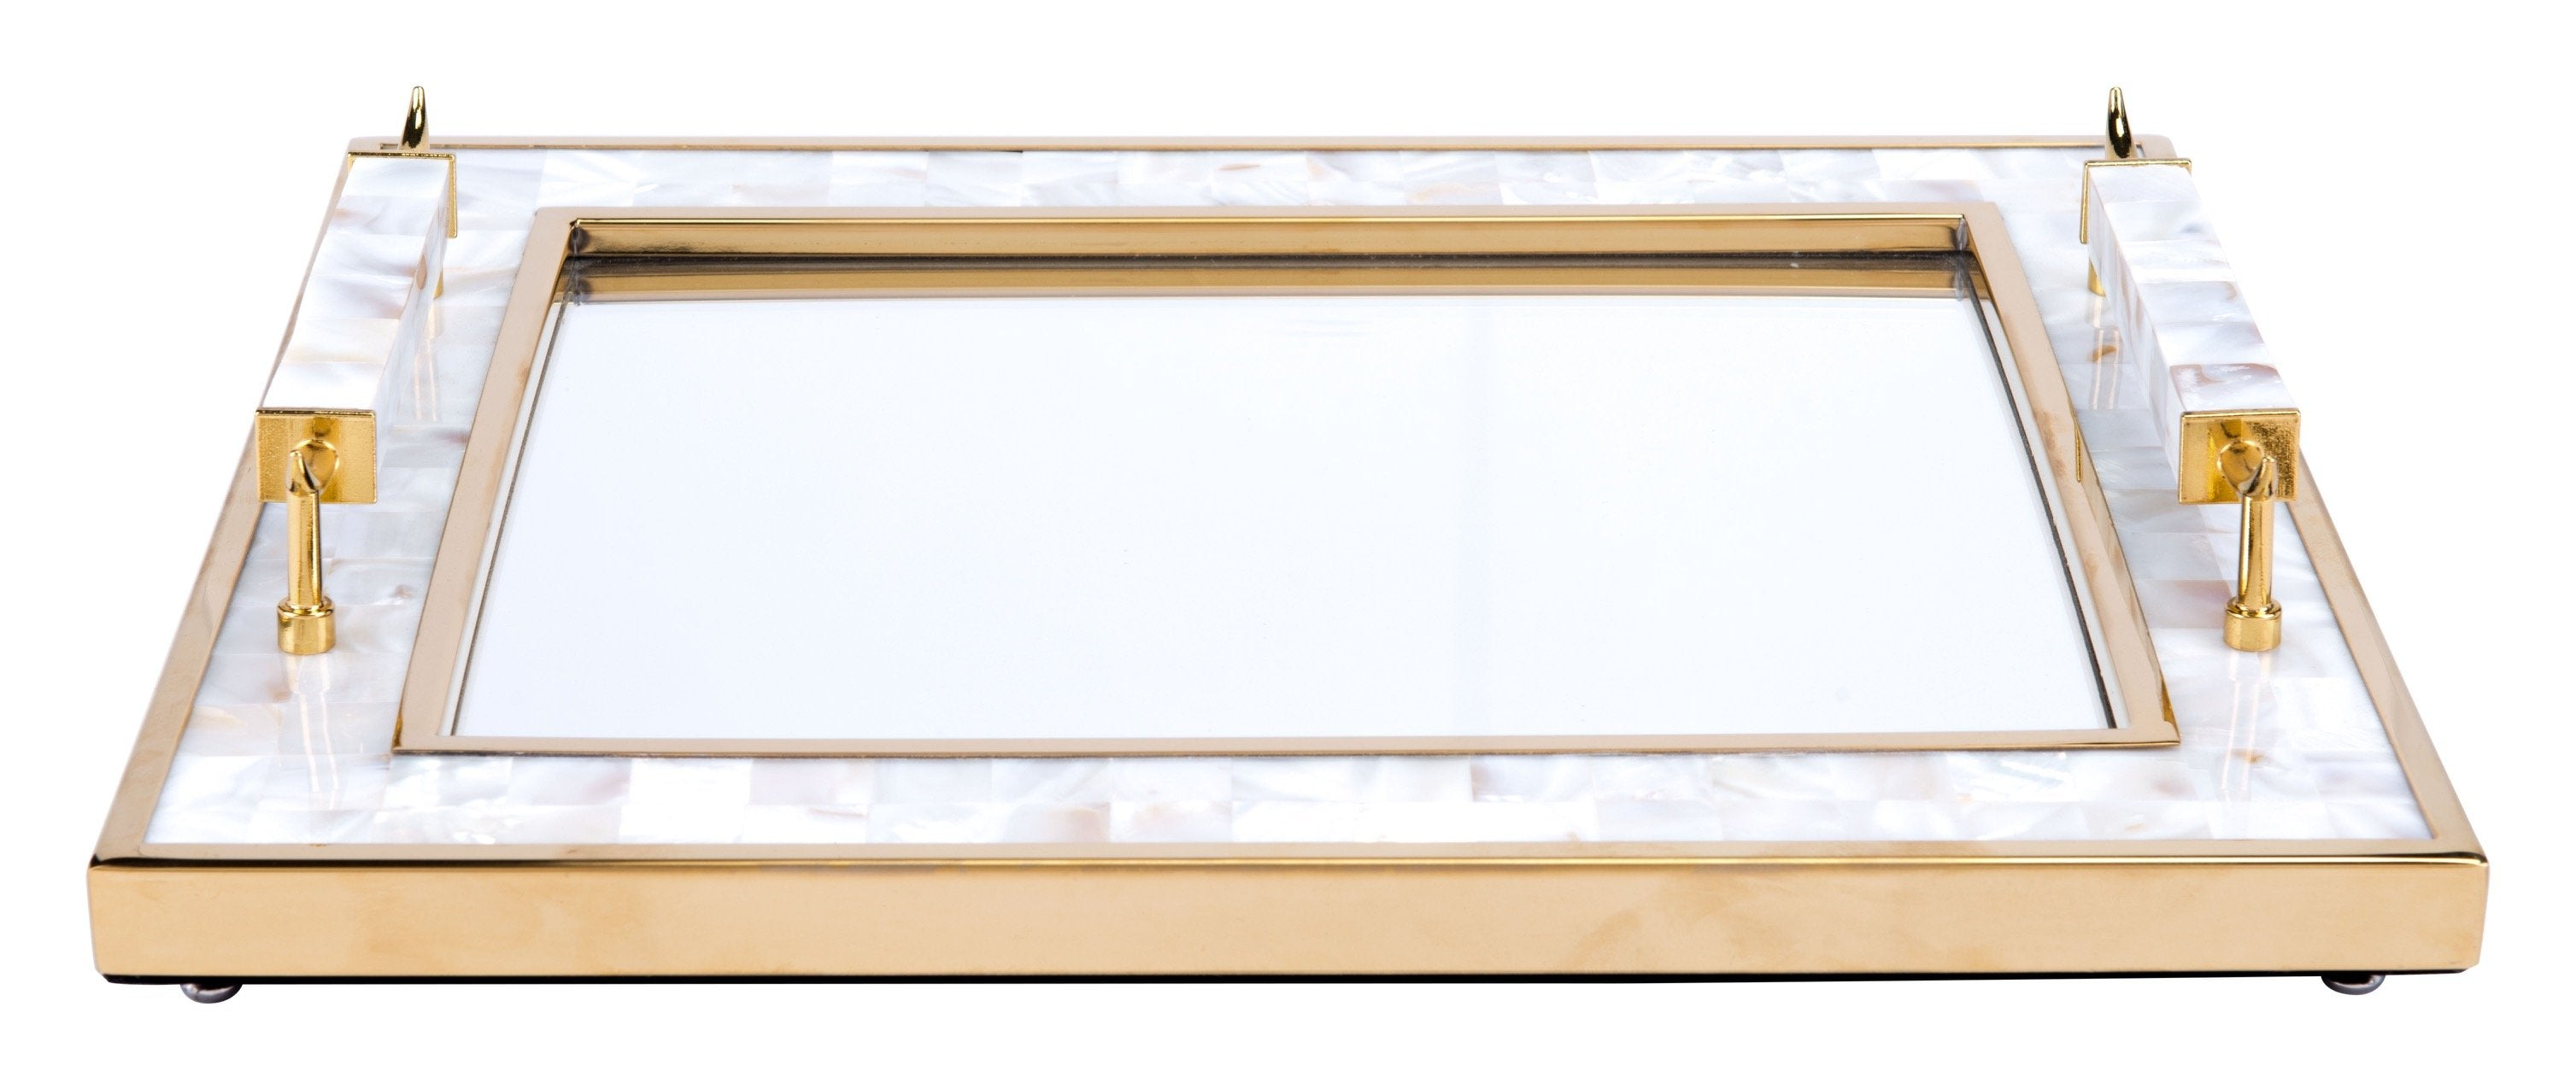 tray with mother of pearl frame and horn handles in white and gold trays - Mother Of Pearl Frame